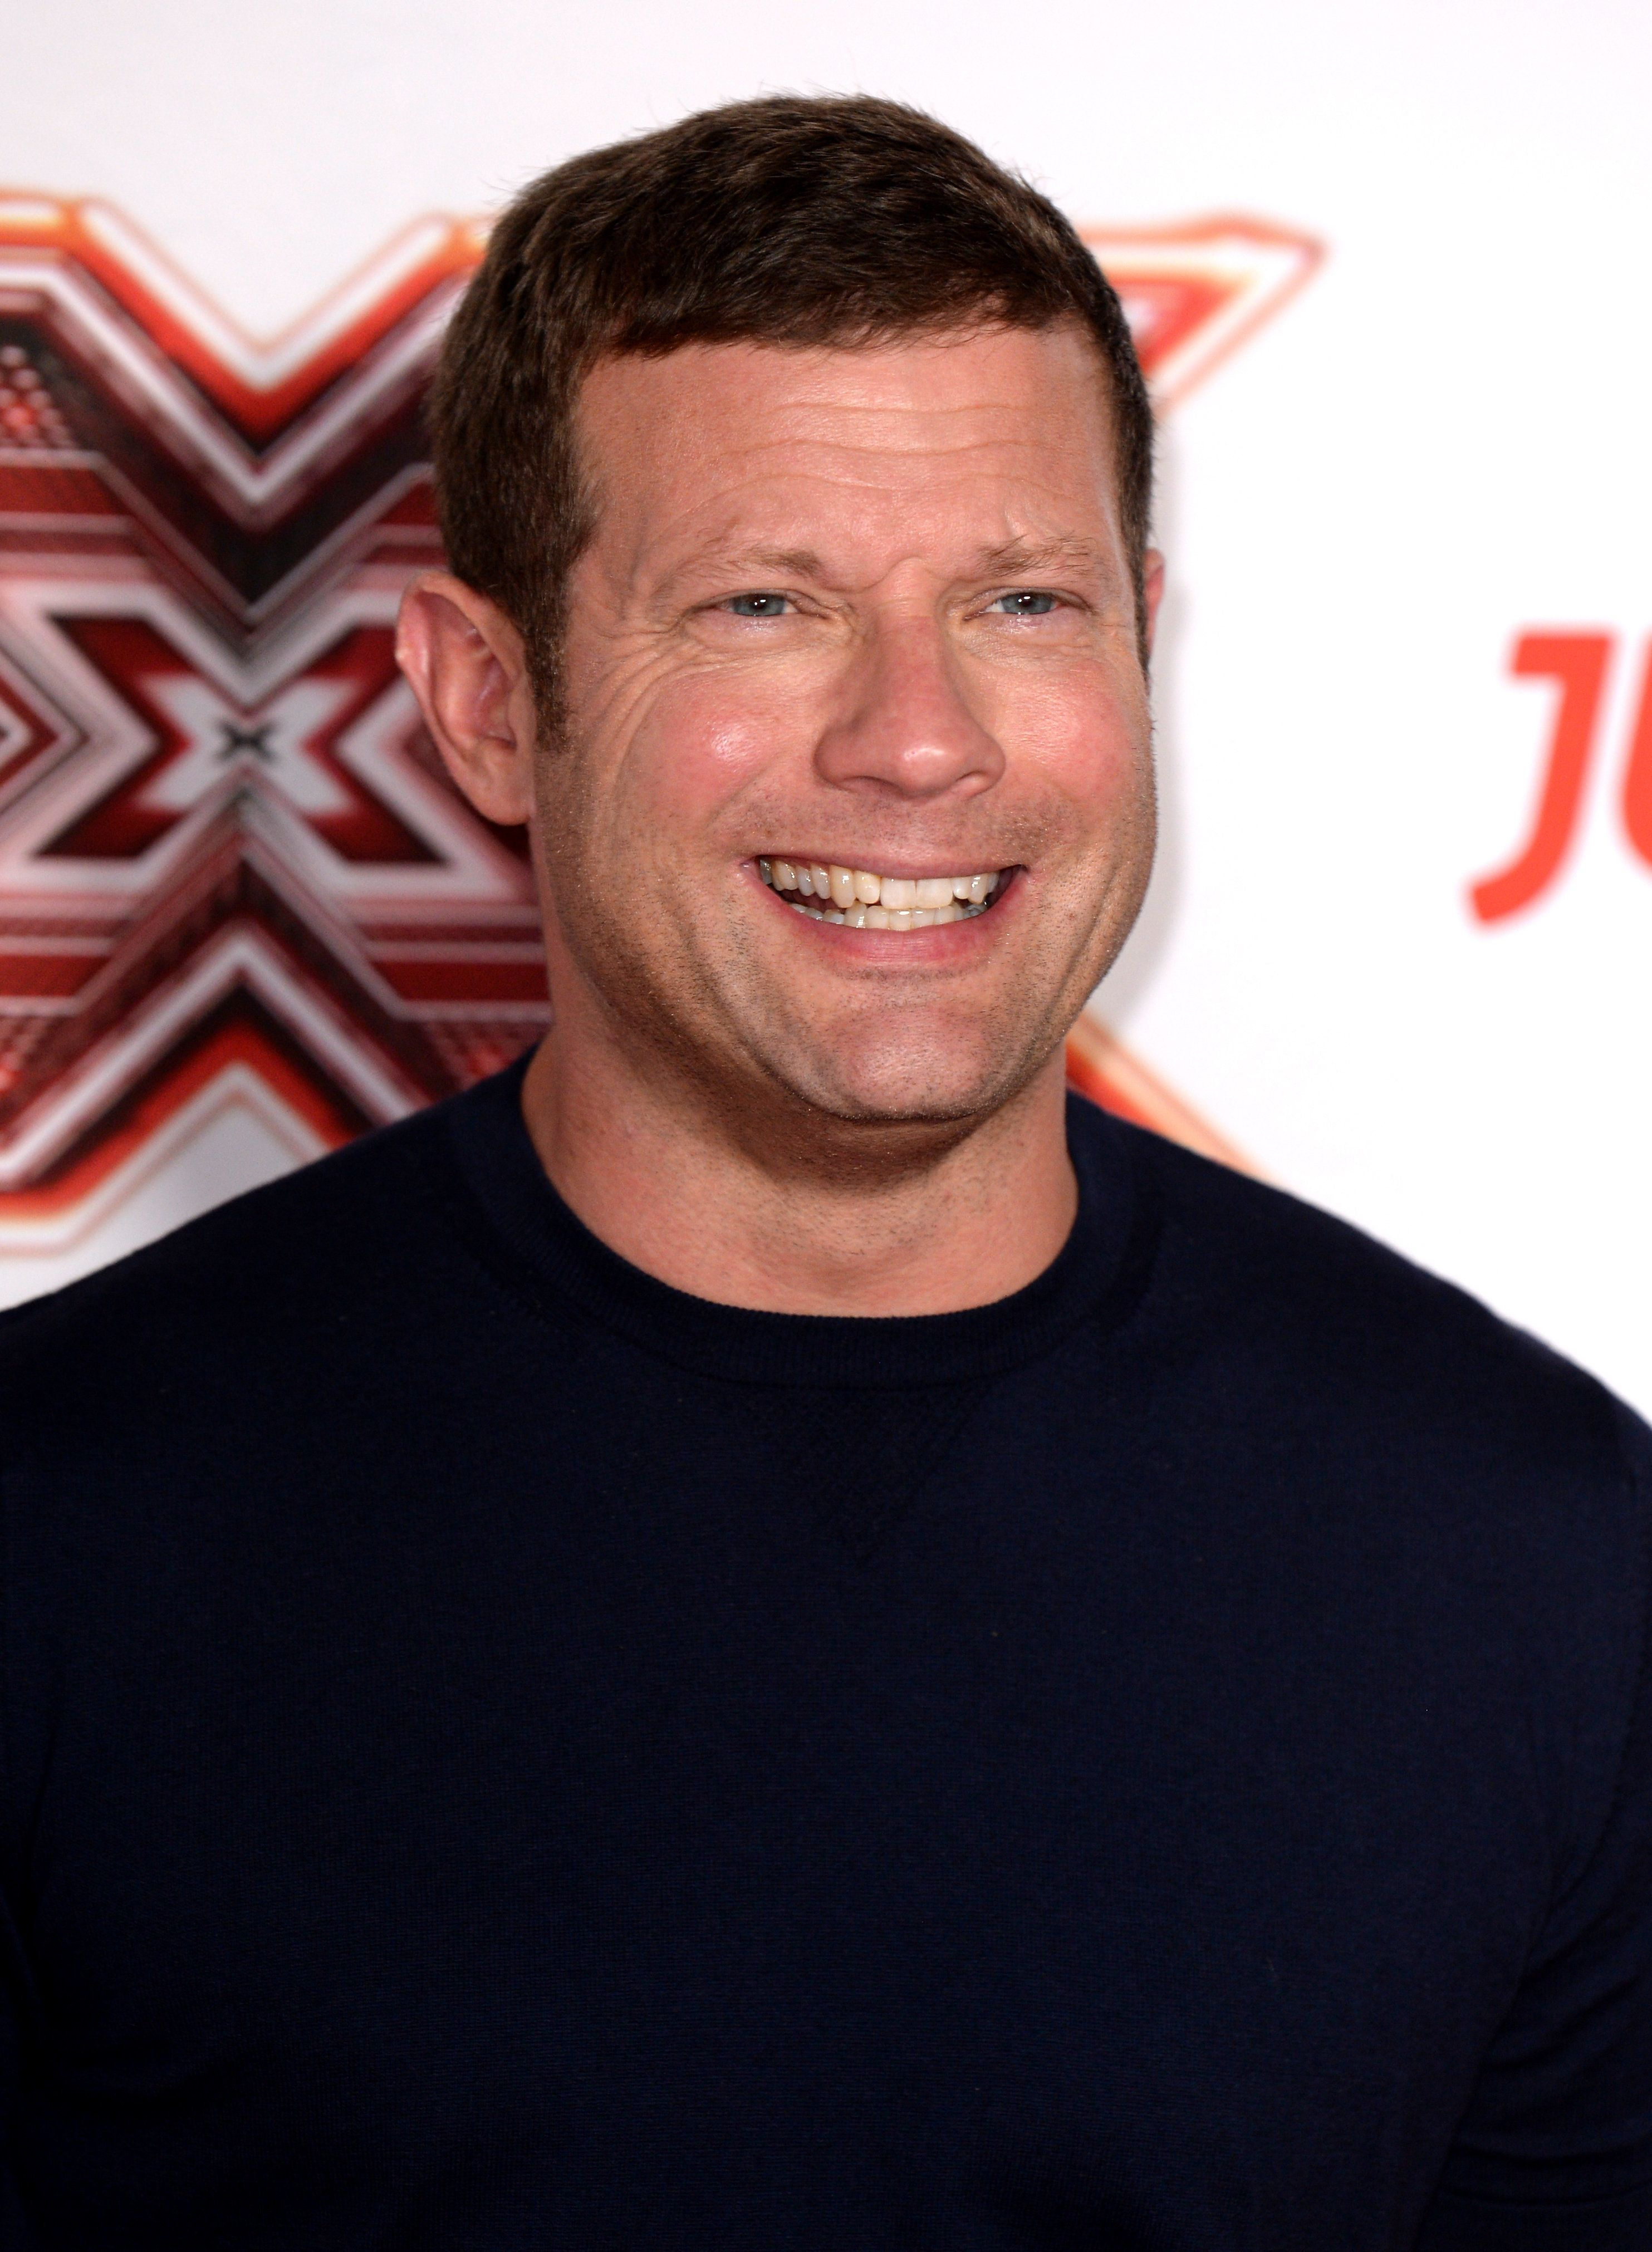 'X Factor' Host Dermot O'Leary Laments Live Show Cuts: 'Of Course I Want To Do